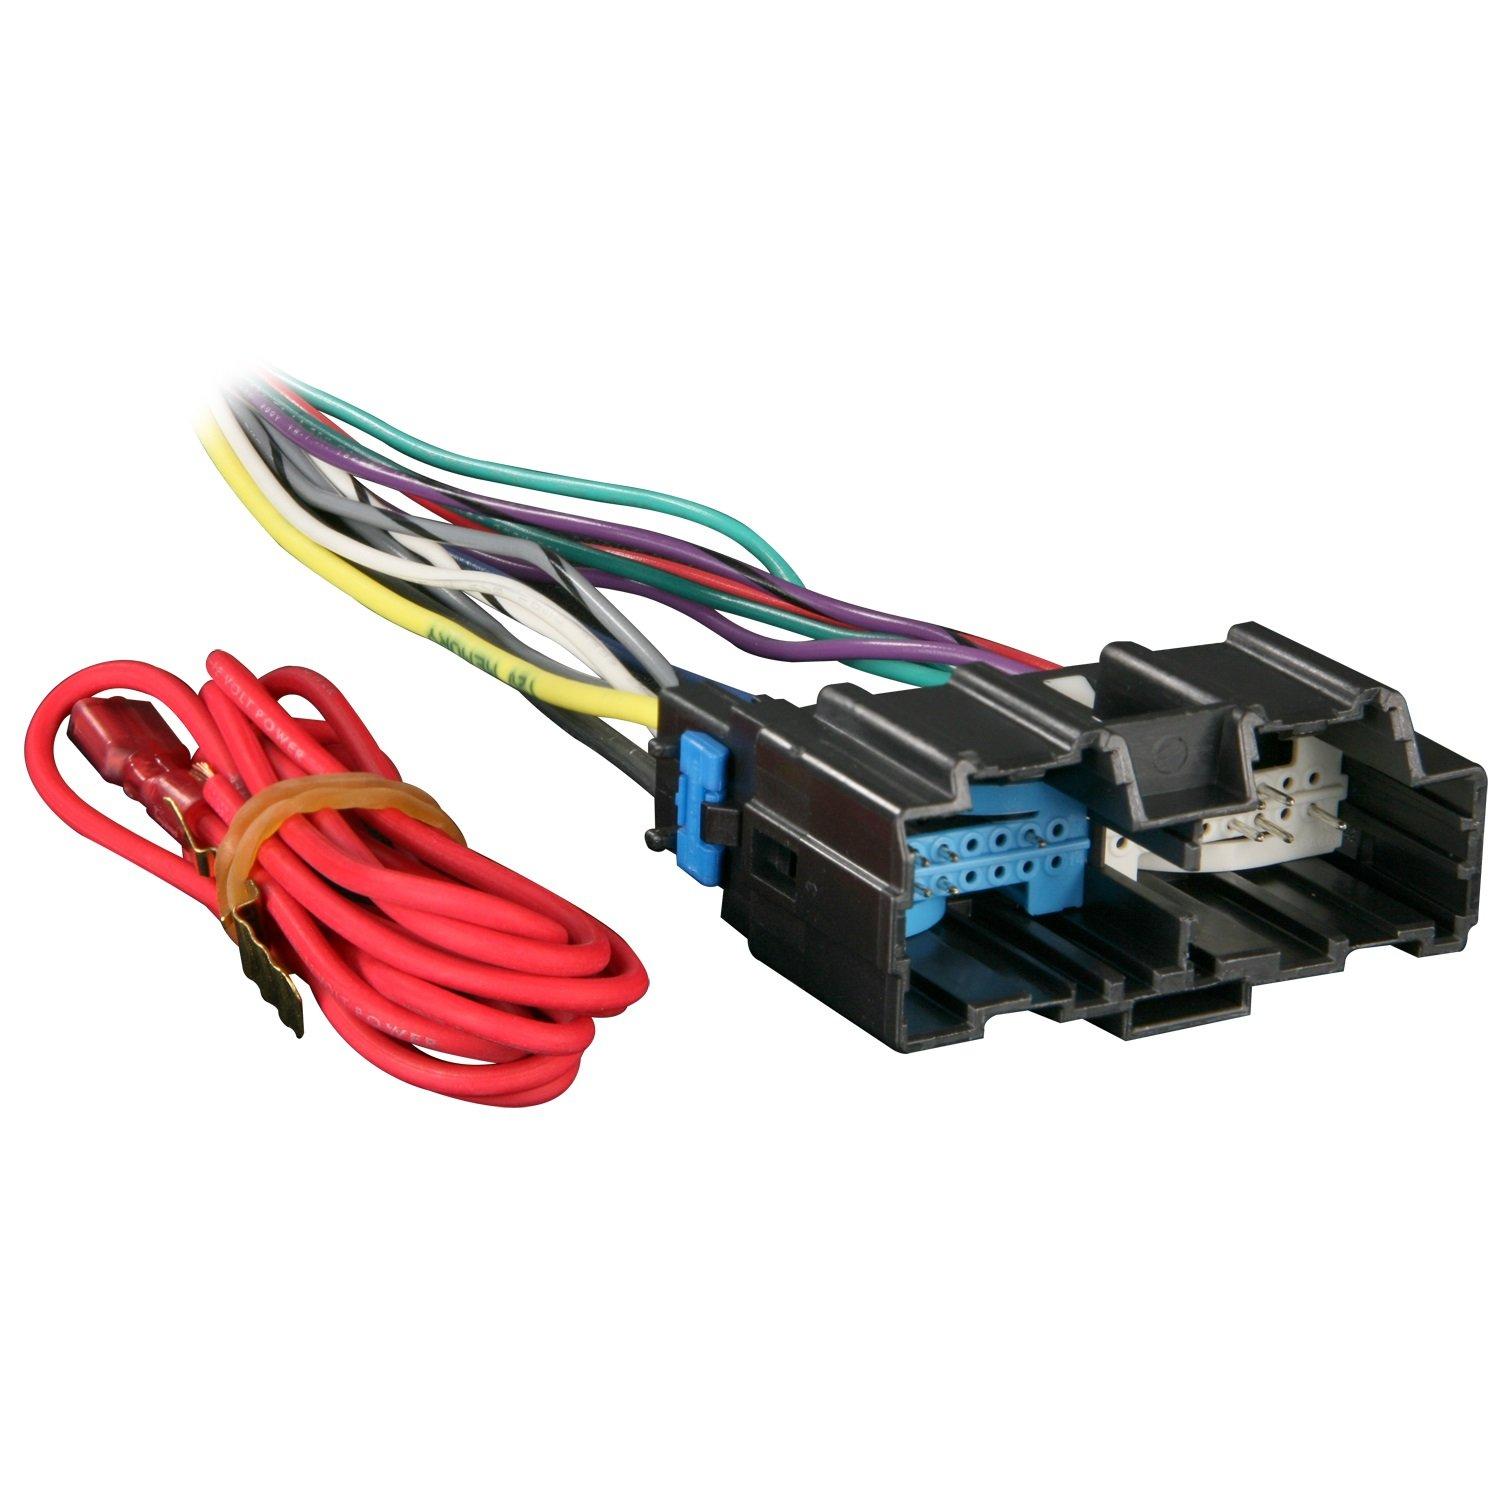 amazon com metra 70 2105 radio wiring harness for impala monte rh amazon com 2008 chevy impala shifter wiring harness 08 chevy impala radio harness